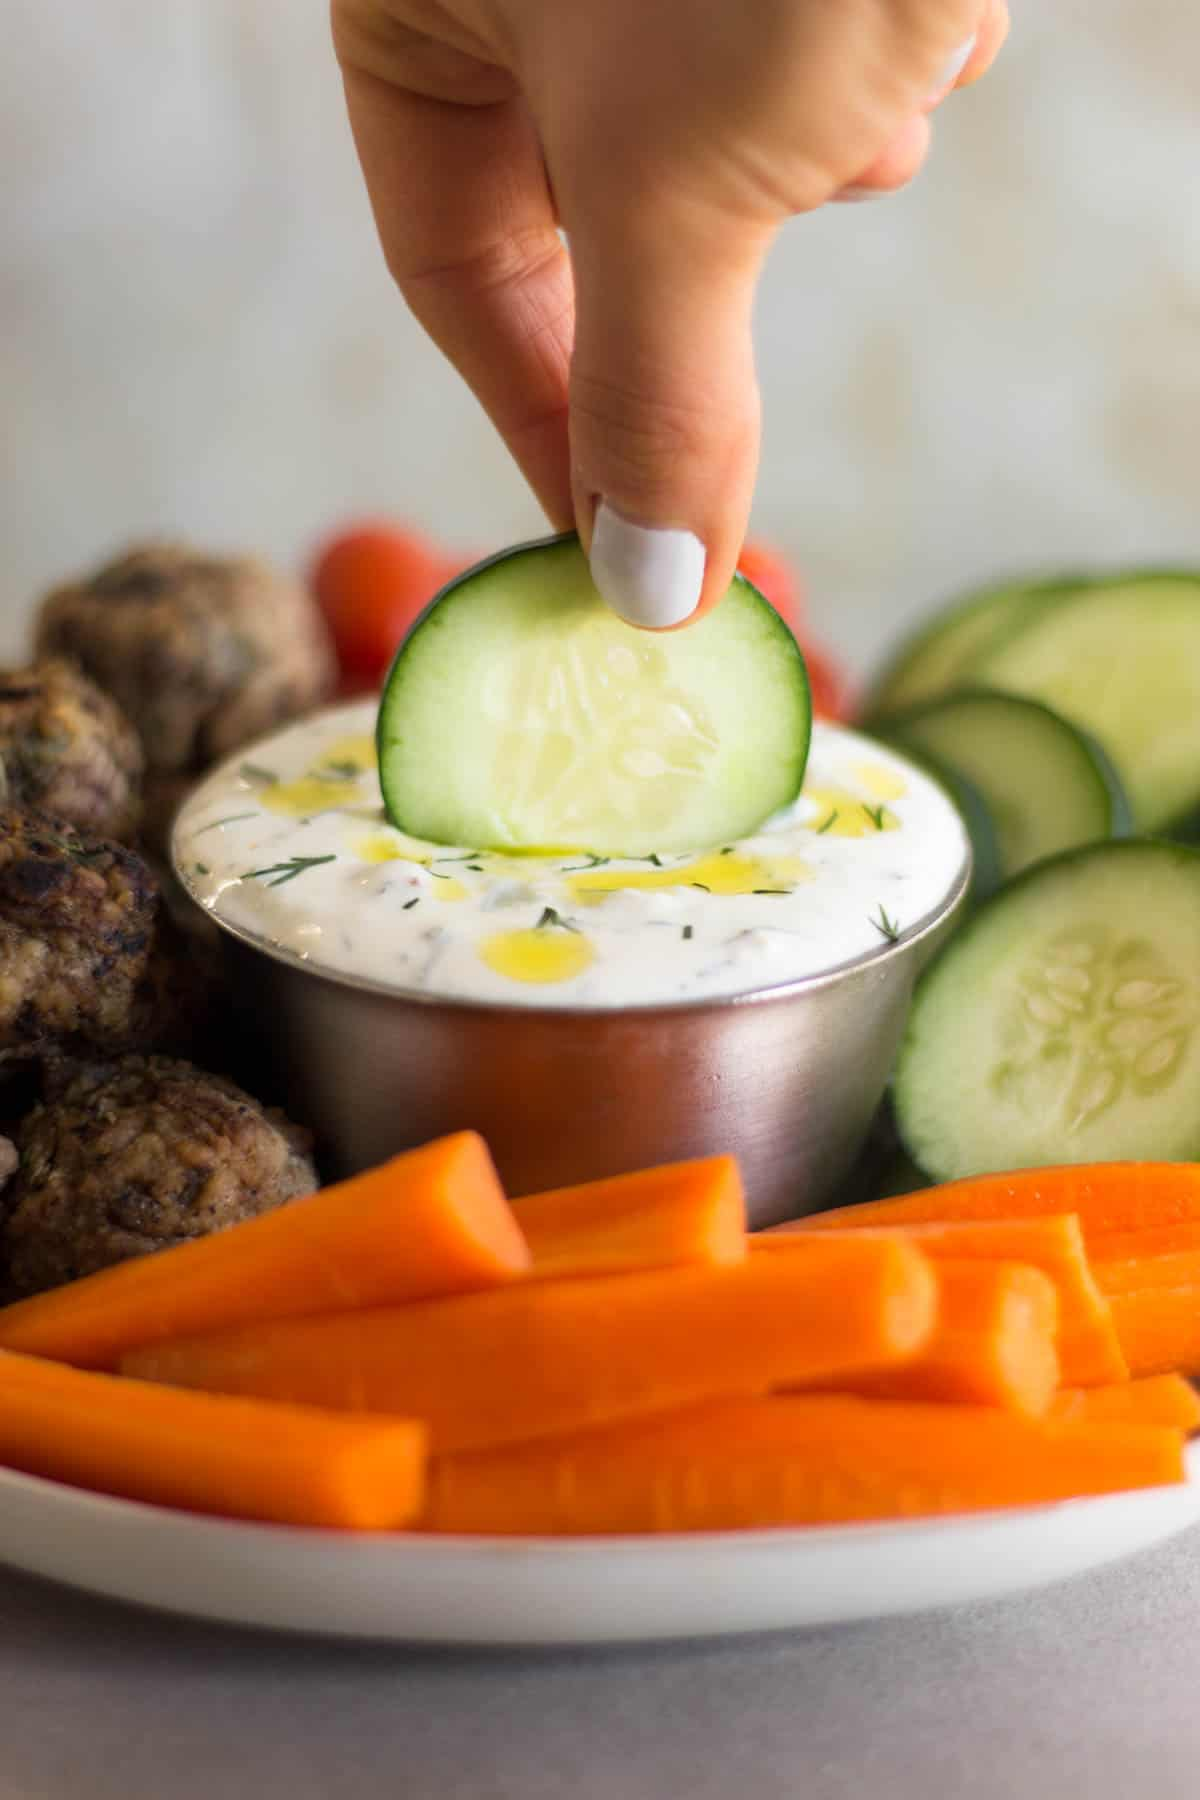 Cucumber being dipped into homemade tzatziki sauce surrounded by veggies and meatballs